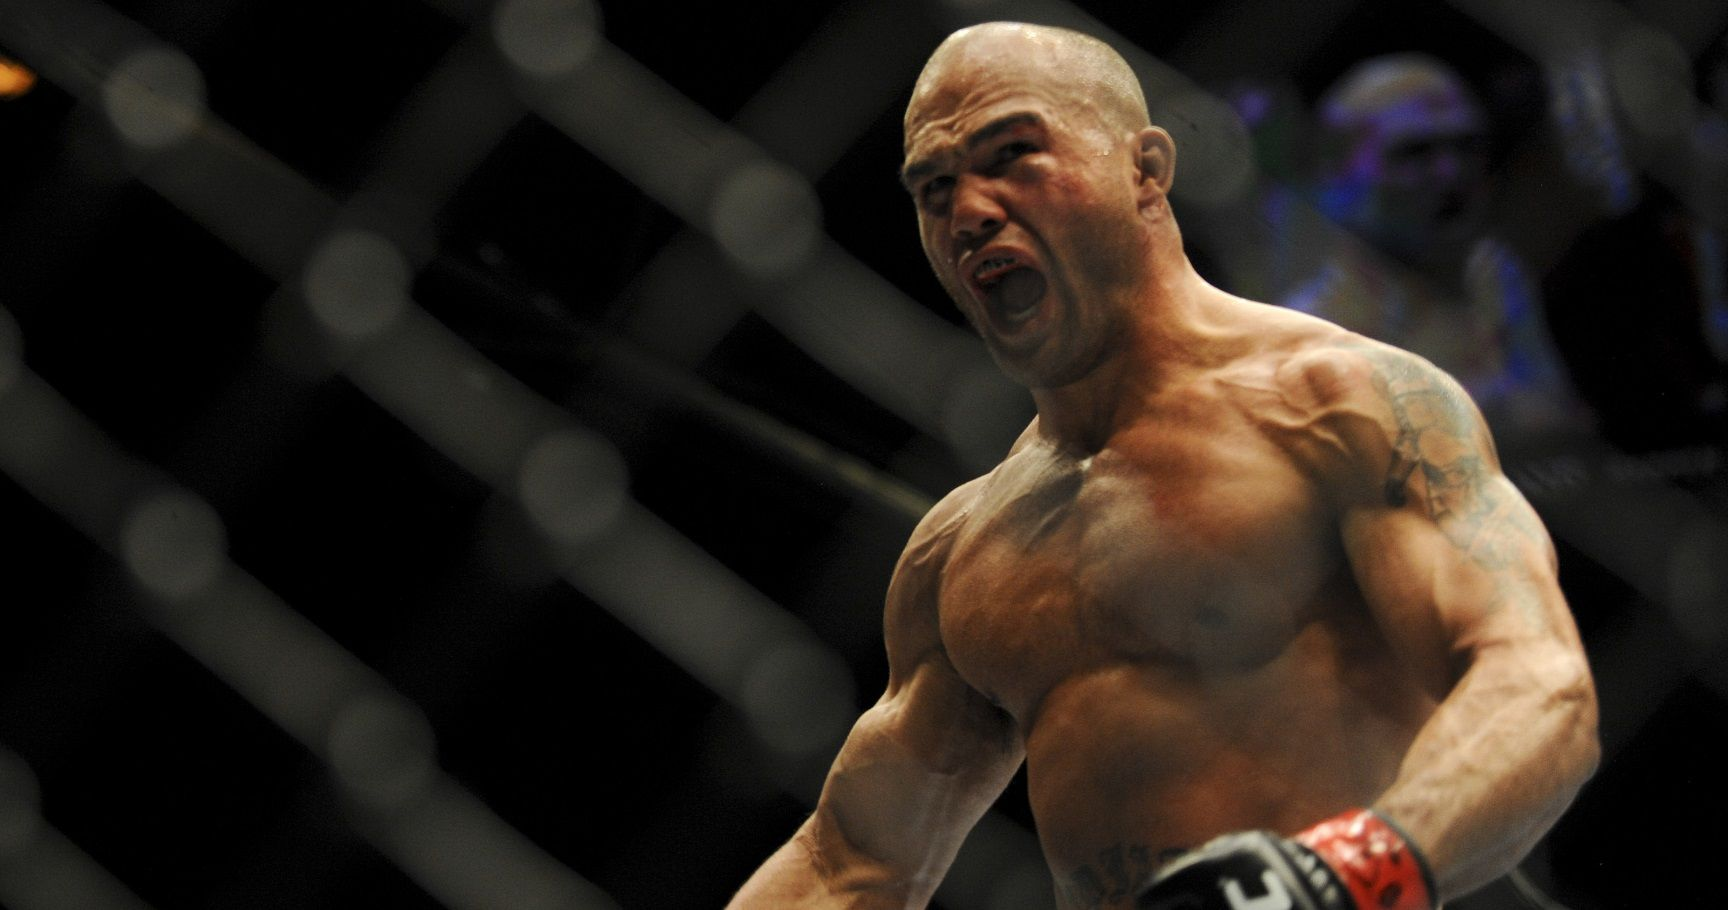 The 8 Greatest Career Revivals in MMA History